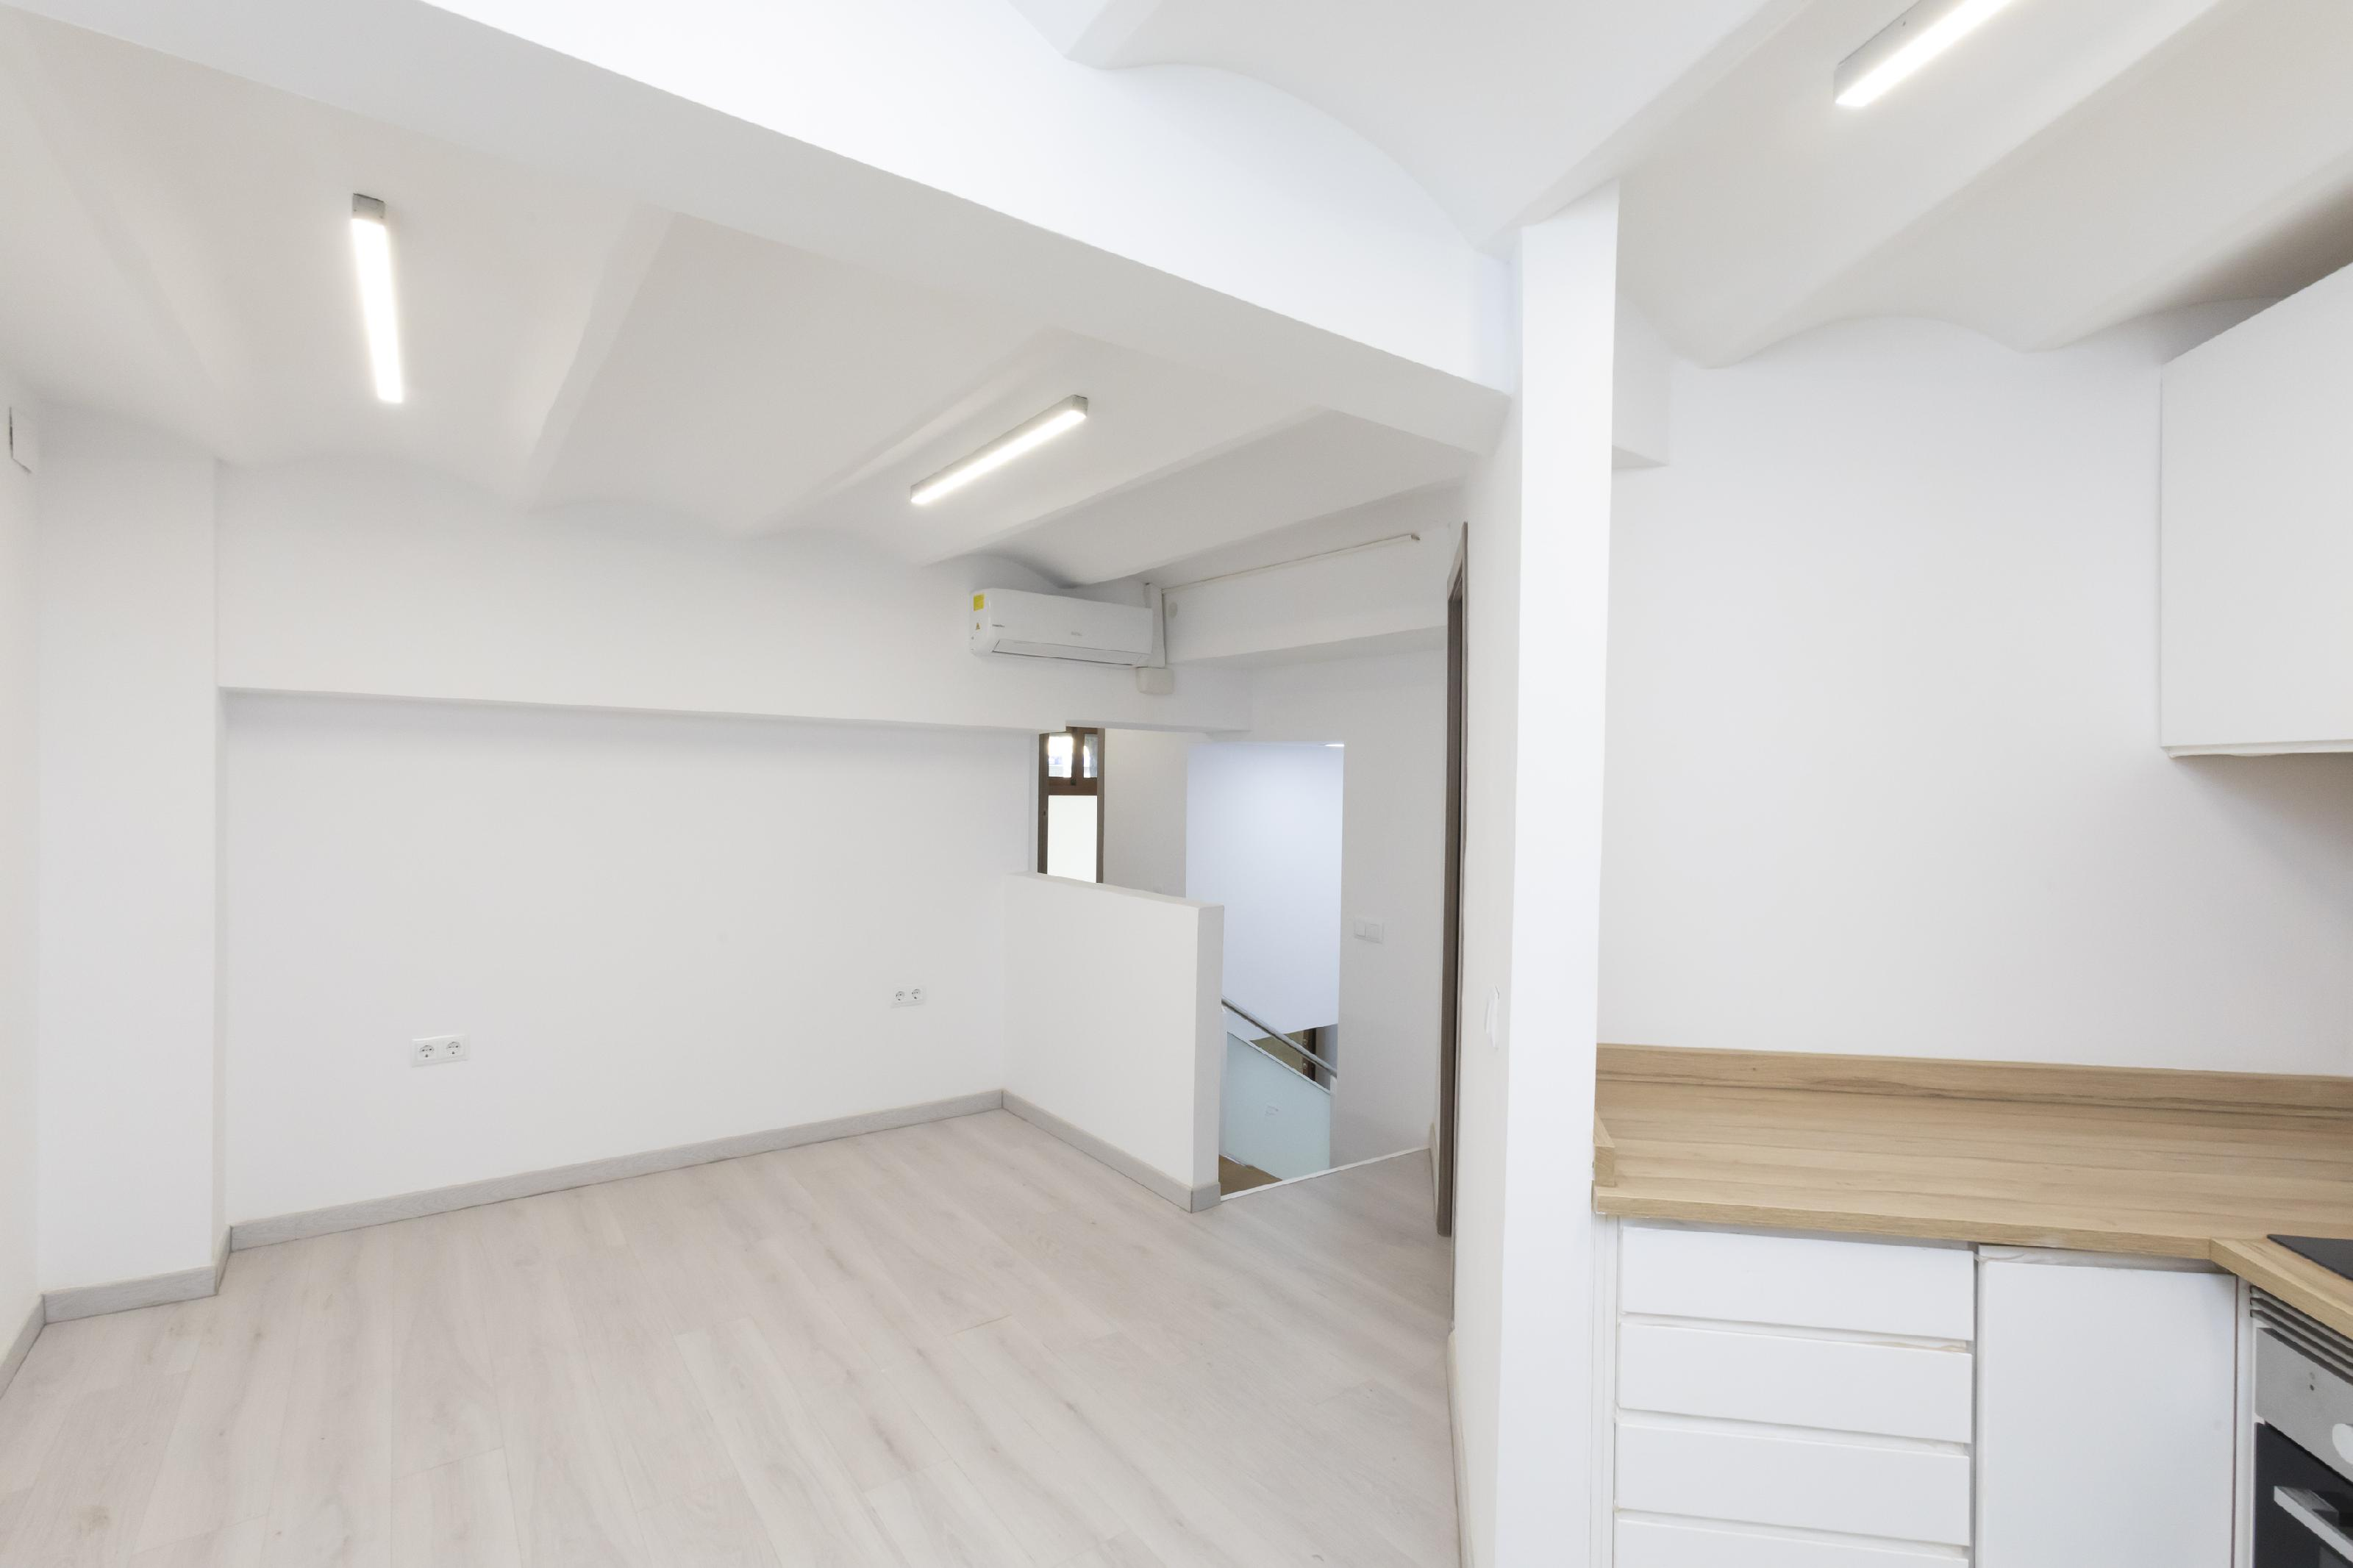 242978 Flat for sale in Gràcia, Camp Grassot and Gràcia Nova 10